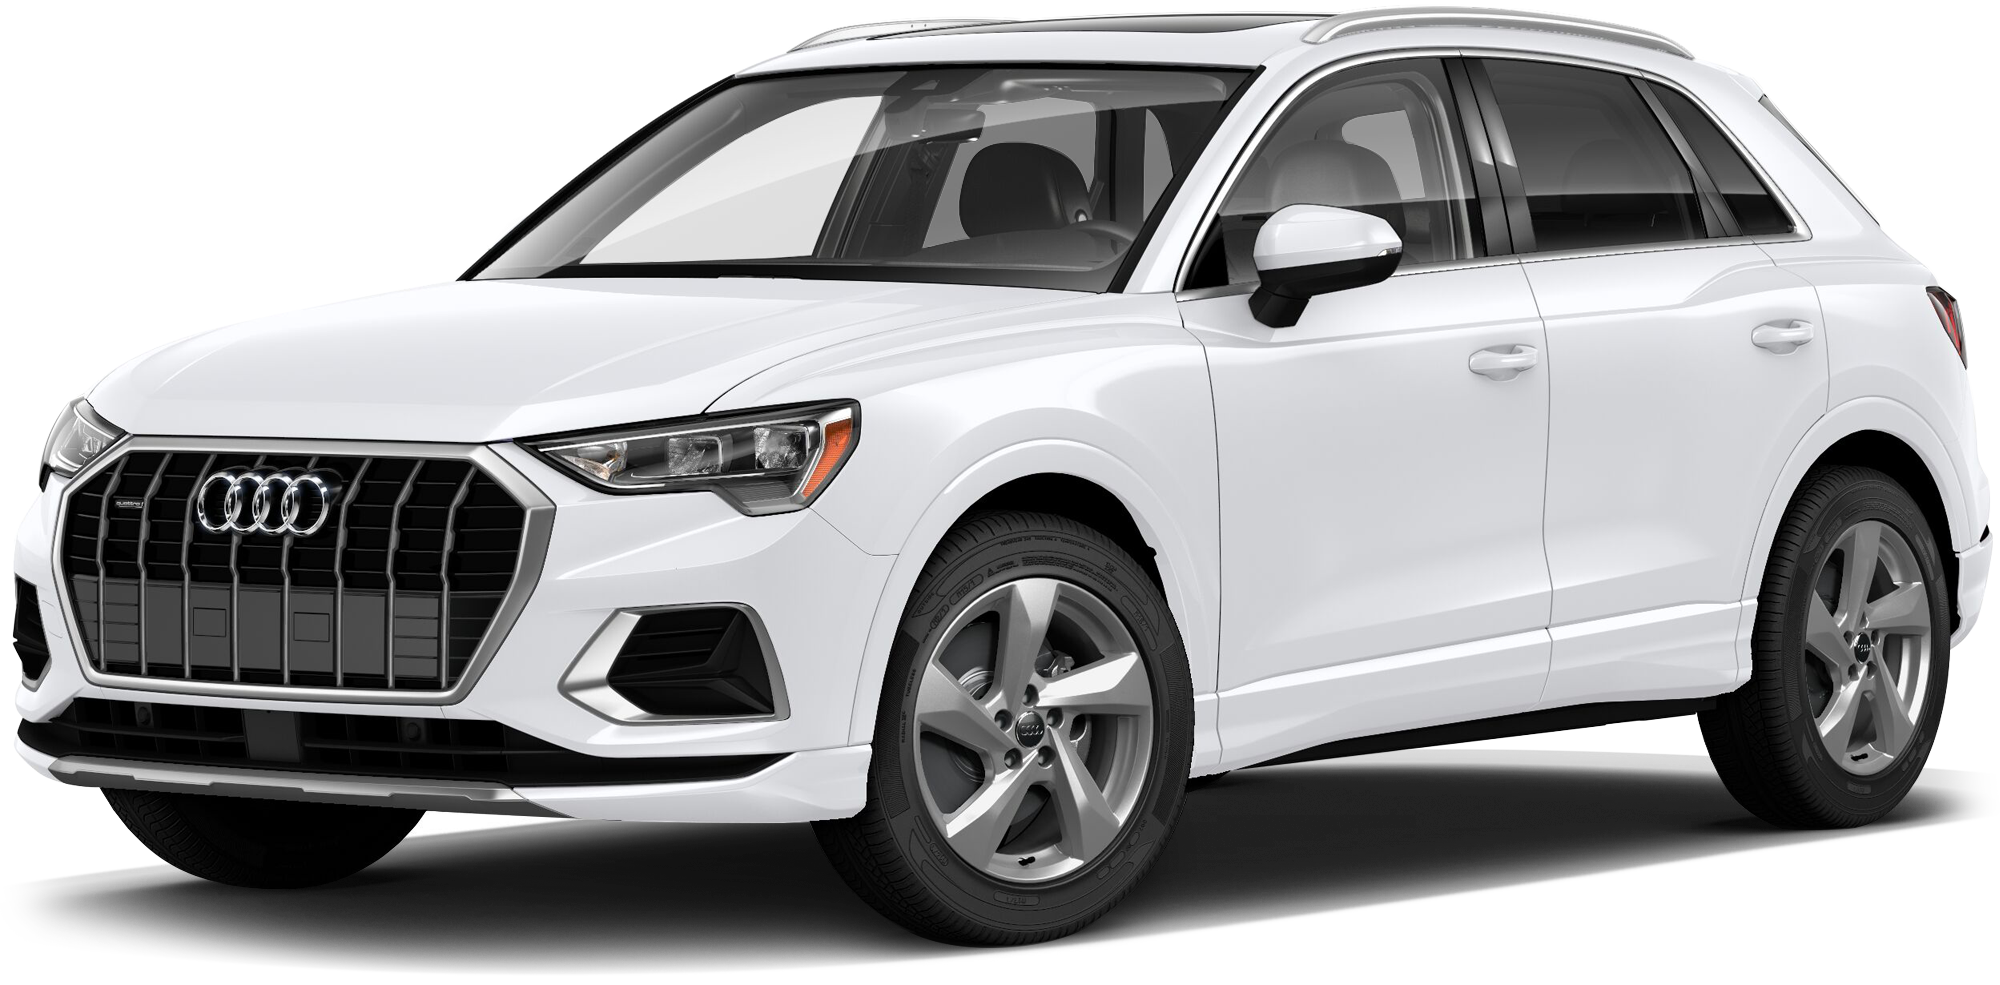 New Audi Q3 Suvs For Sale In Houston At Audi West Houston